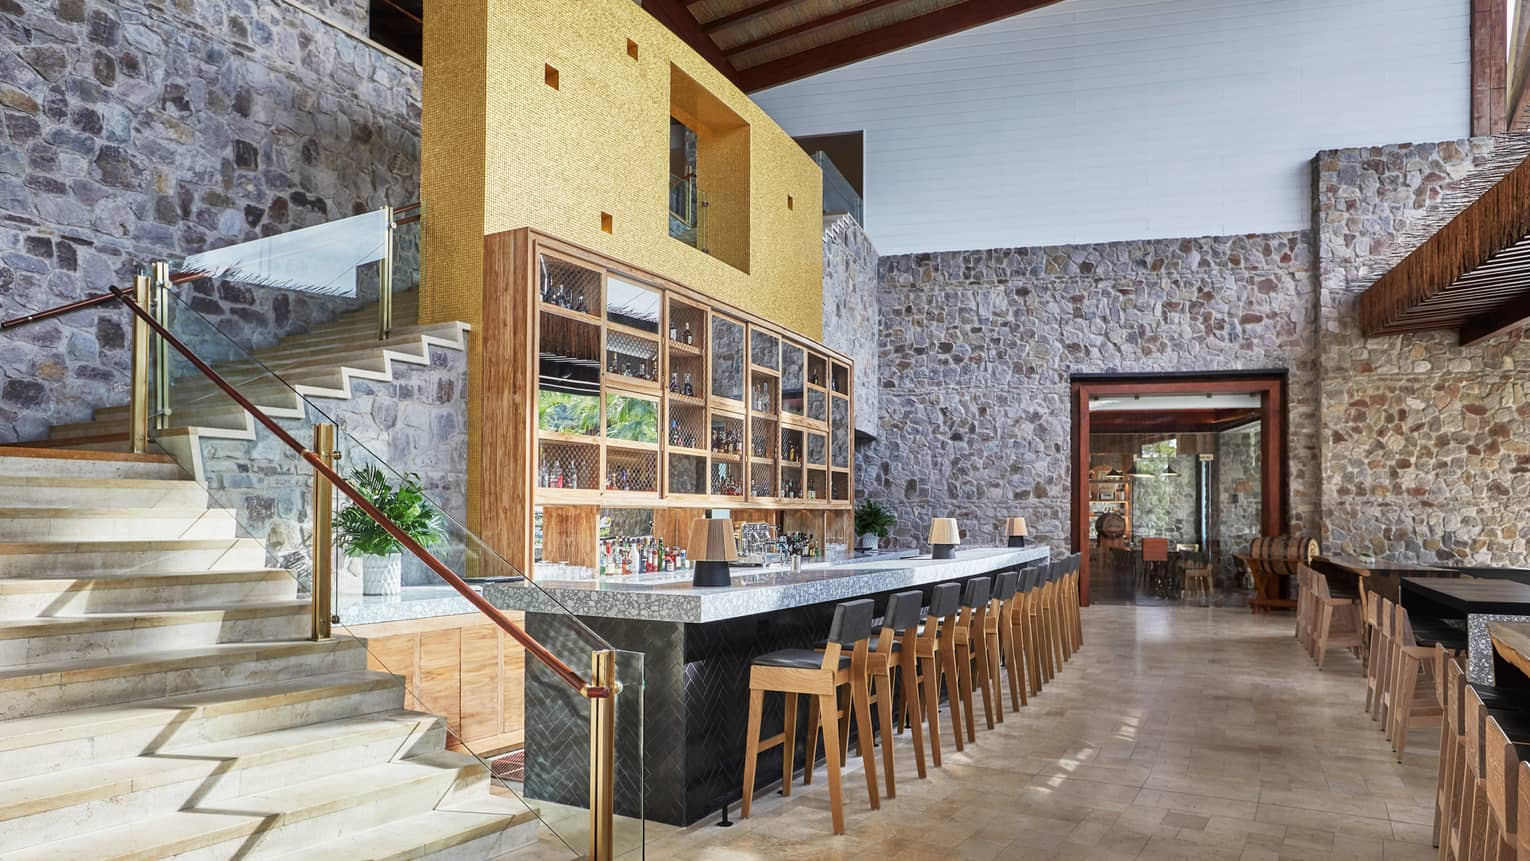 Anejo long bar under modern winding staircase, rustic stone walls, vaulted ceilings